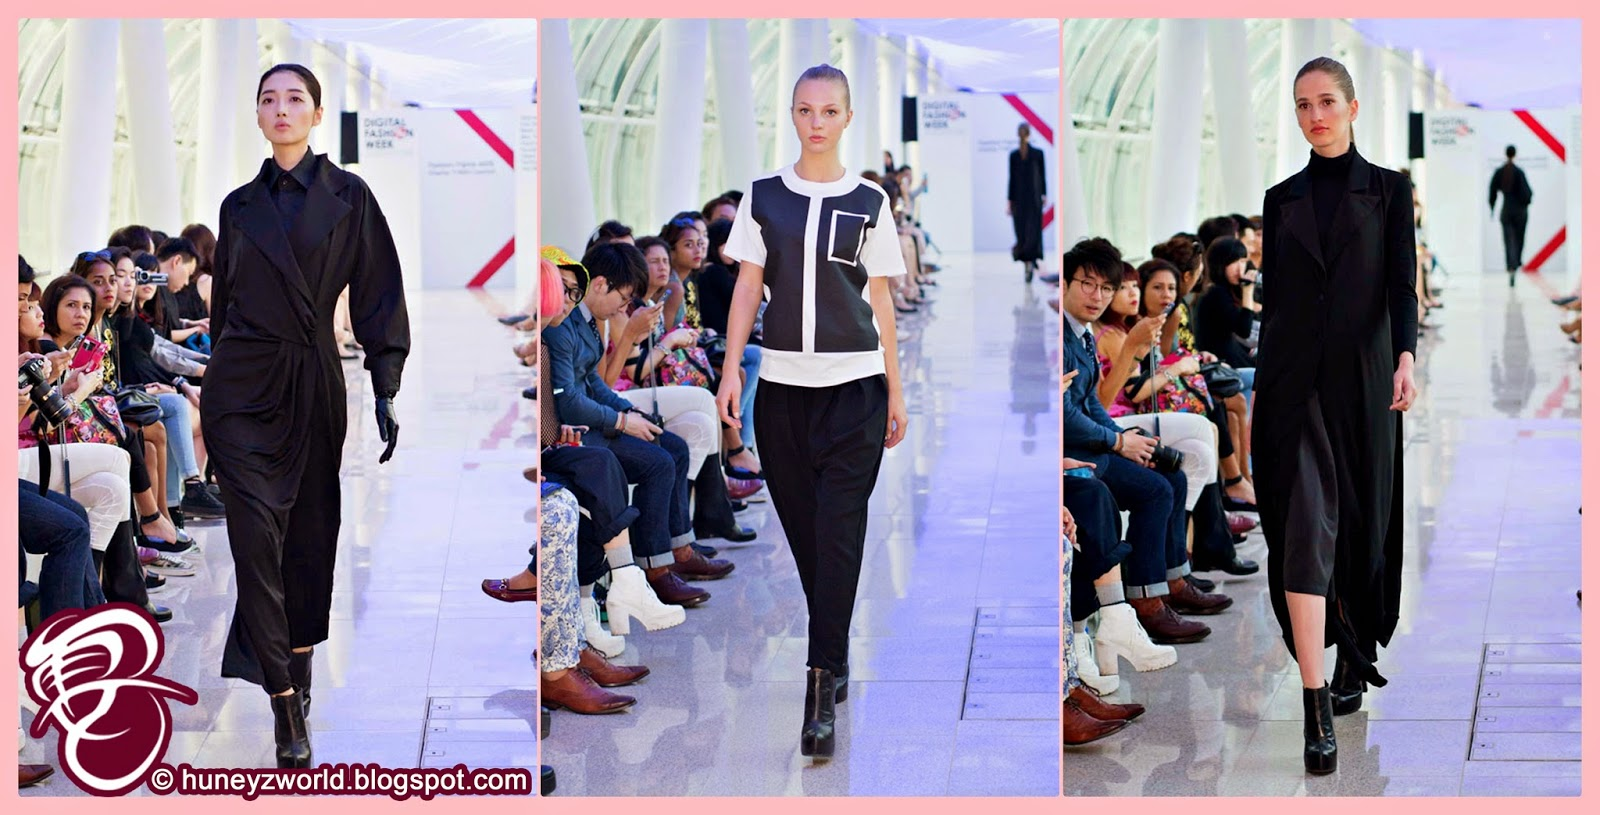 Fashion For A Cause At The Digital Fashion Week 2014 ...